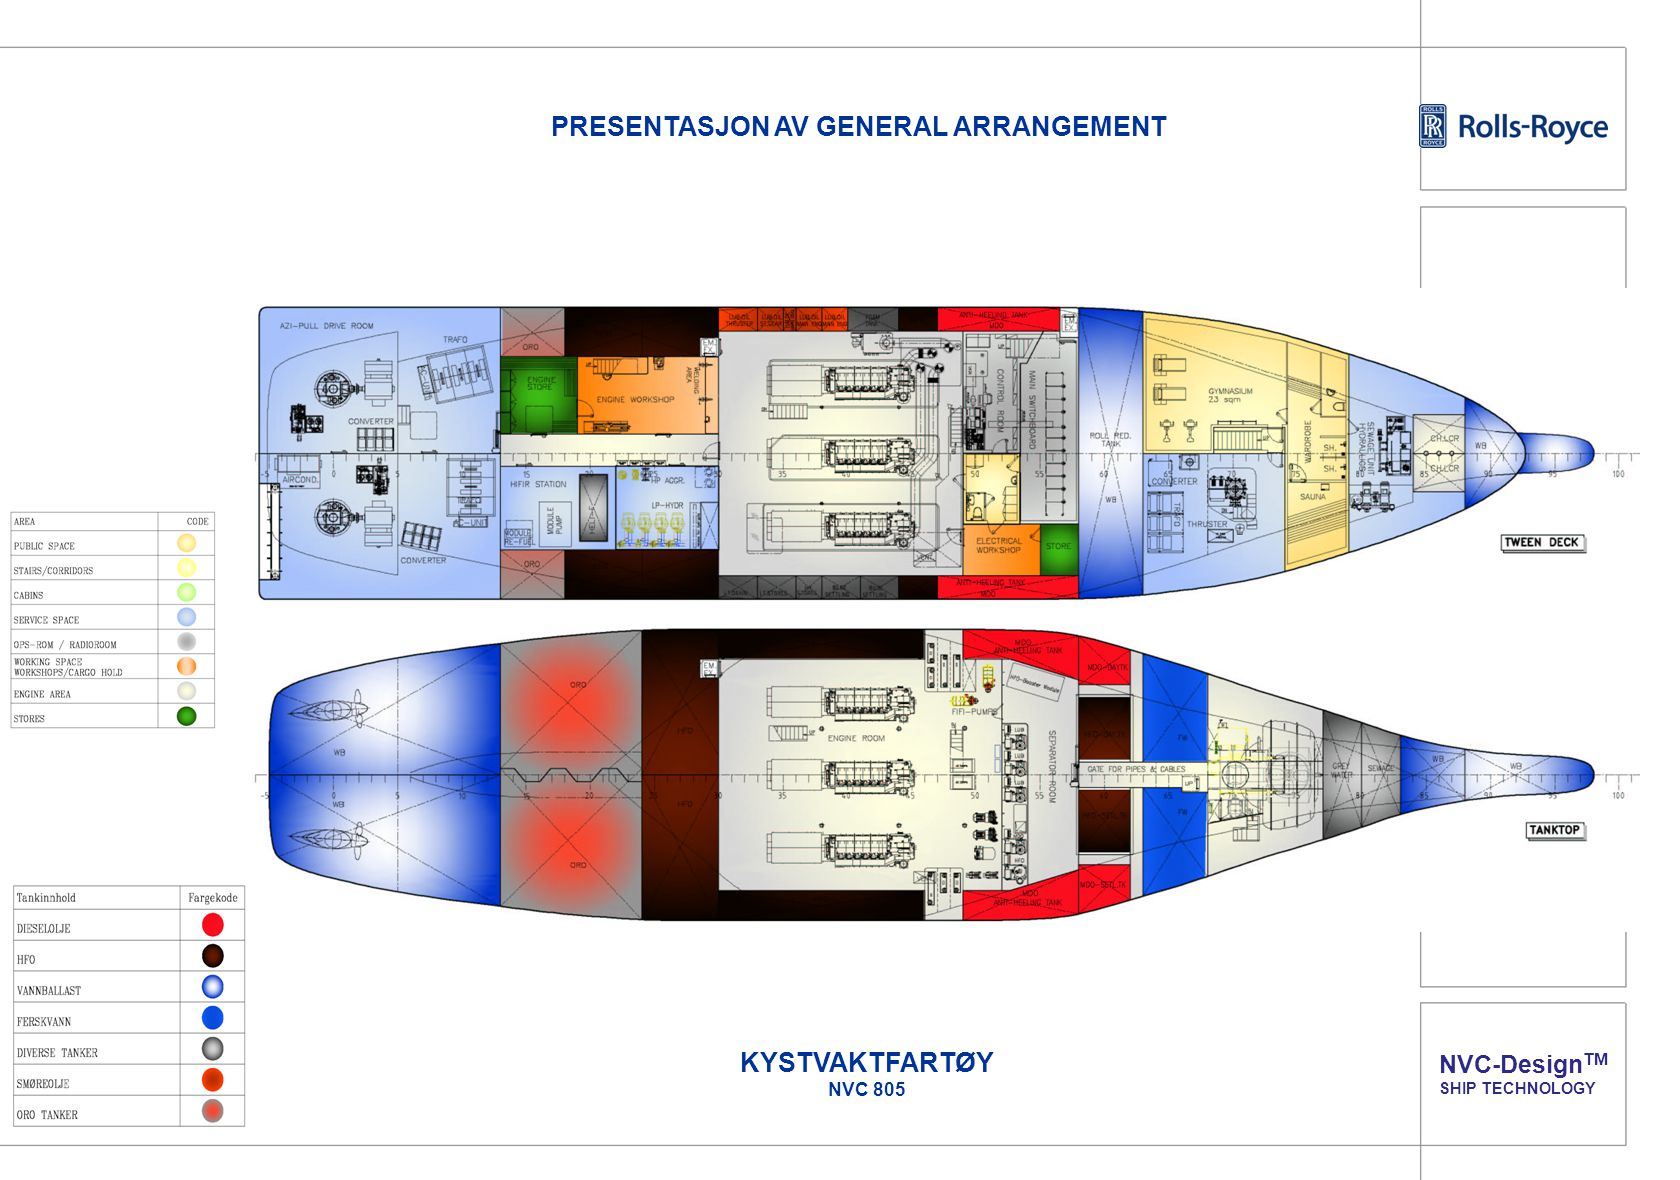 PRESENTASJON AV GENERAL ARRANGEMENT